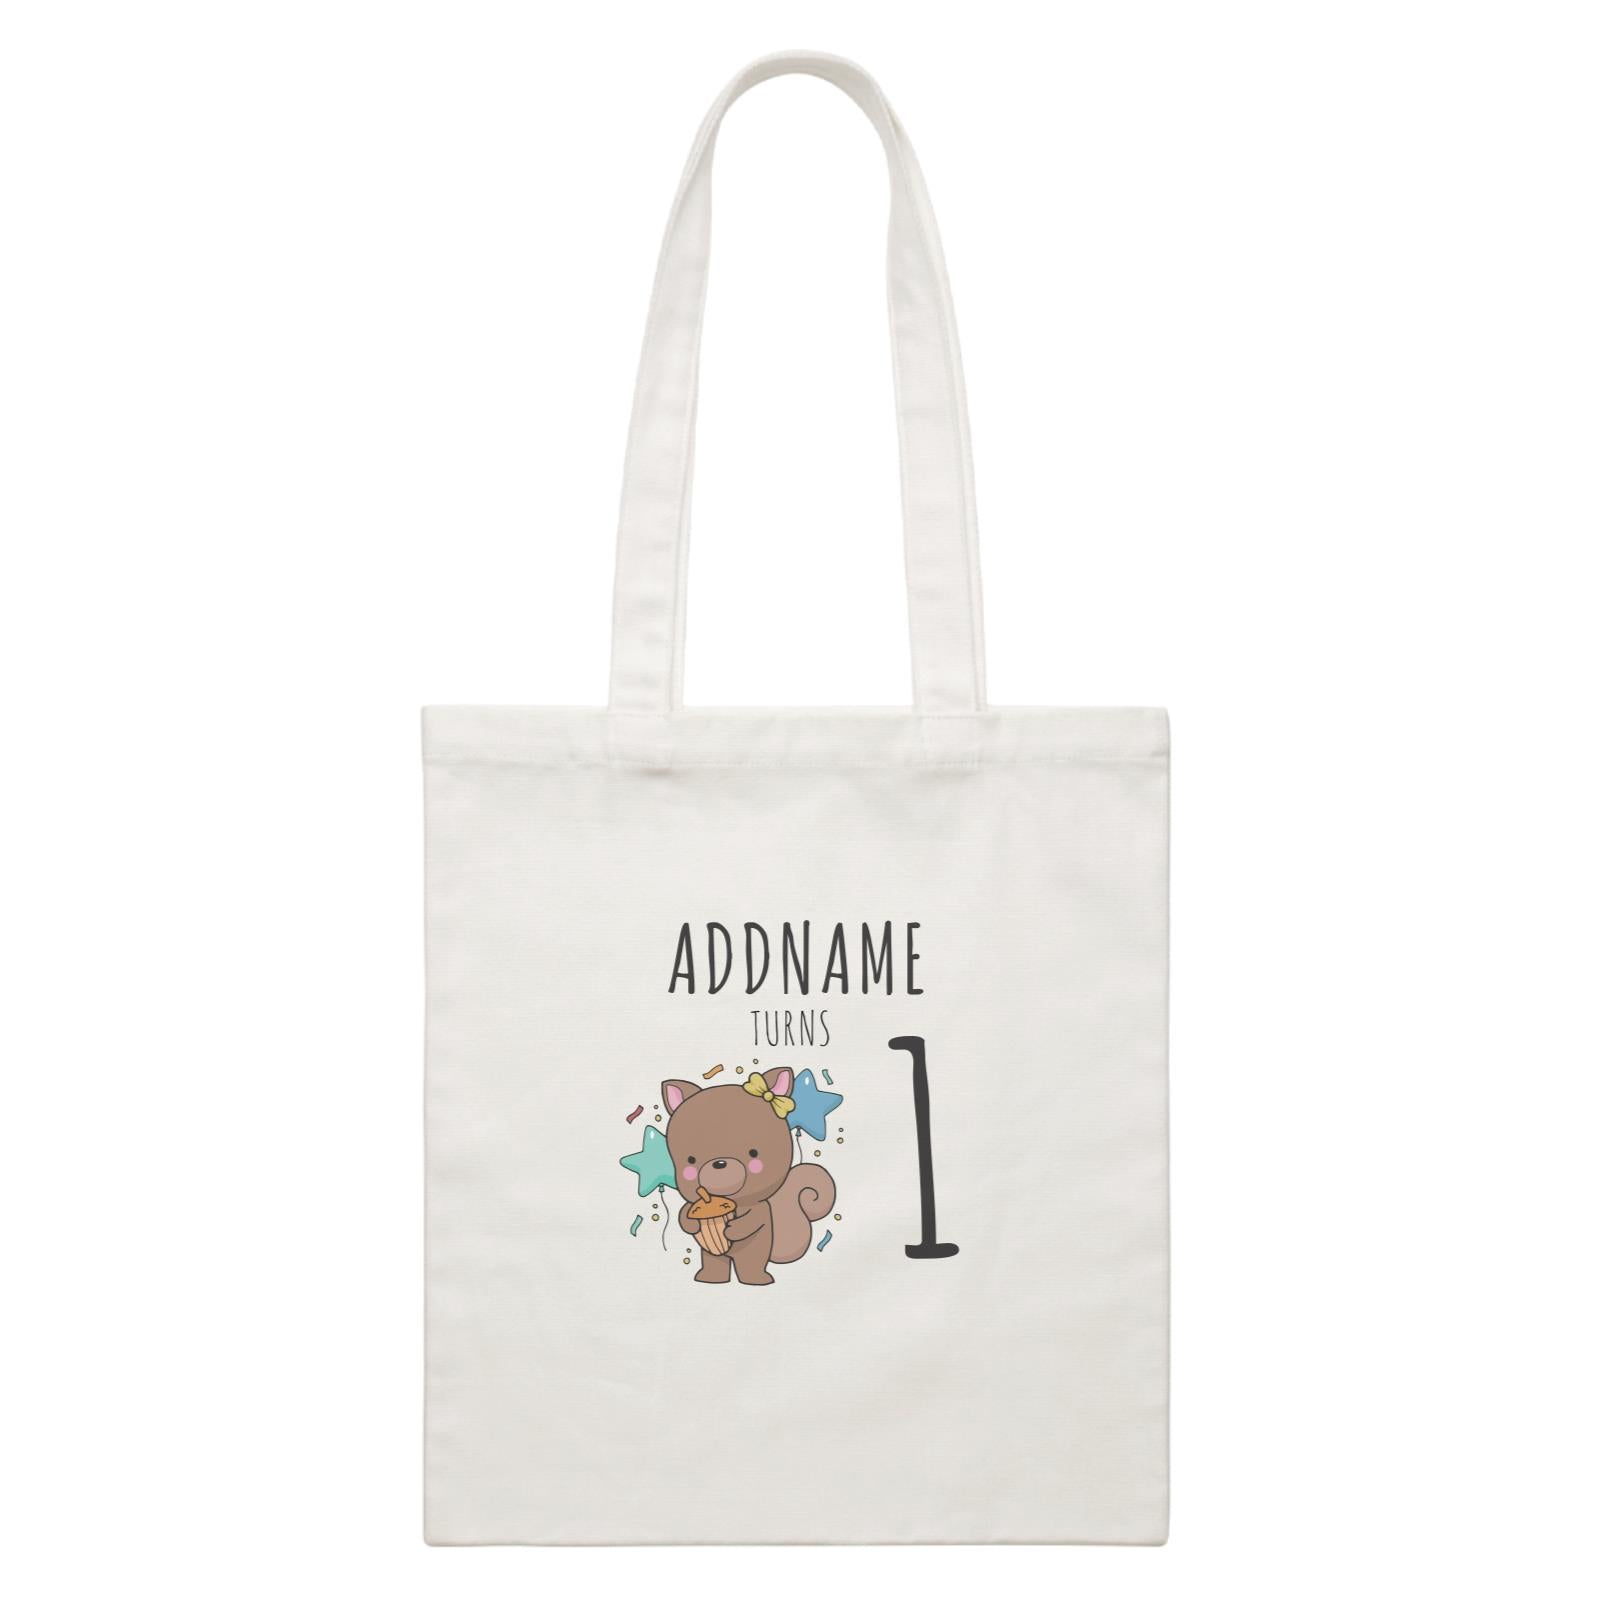 Birthday Sketch Animals Squirrel with Acorn Addname Turns 1 White Canvas Bag